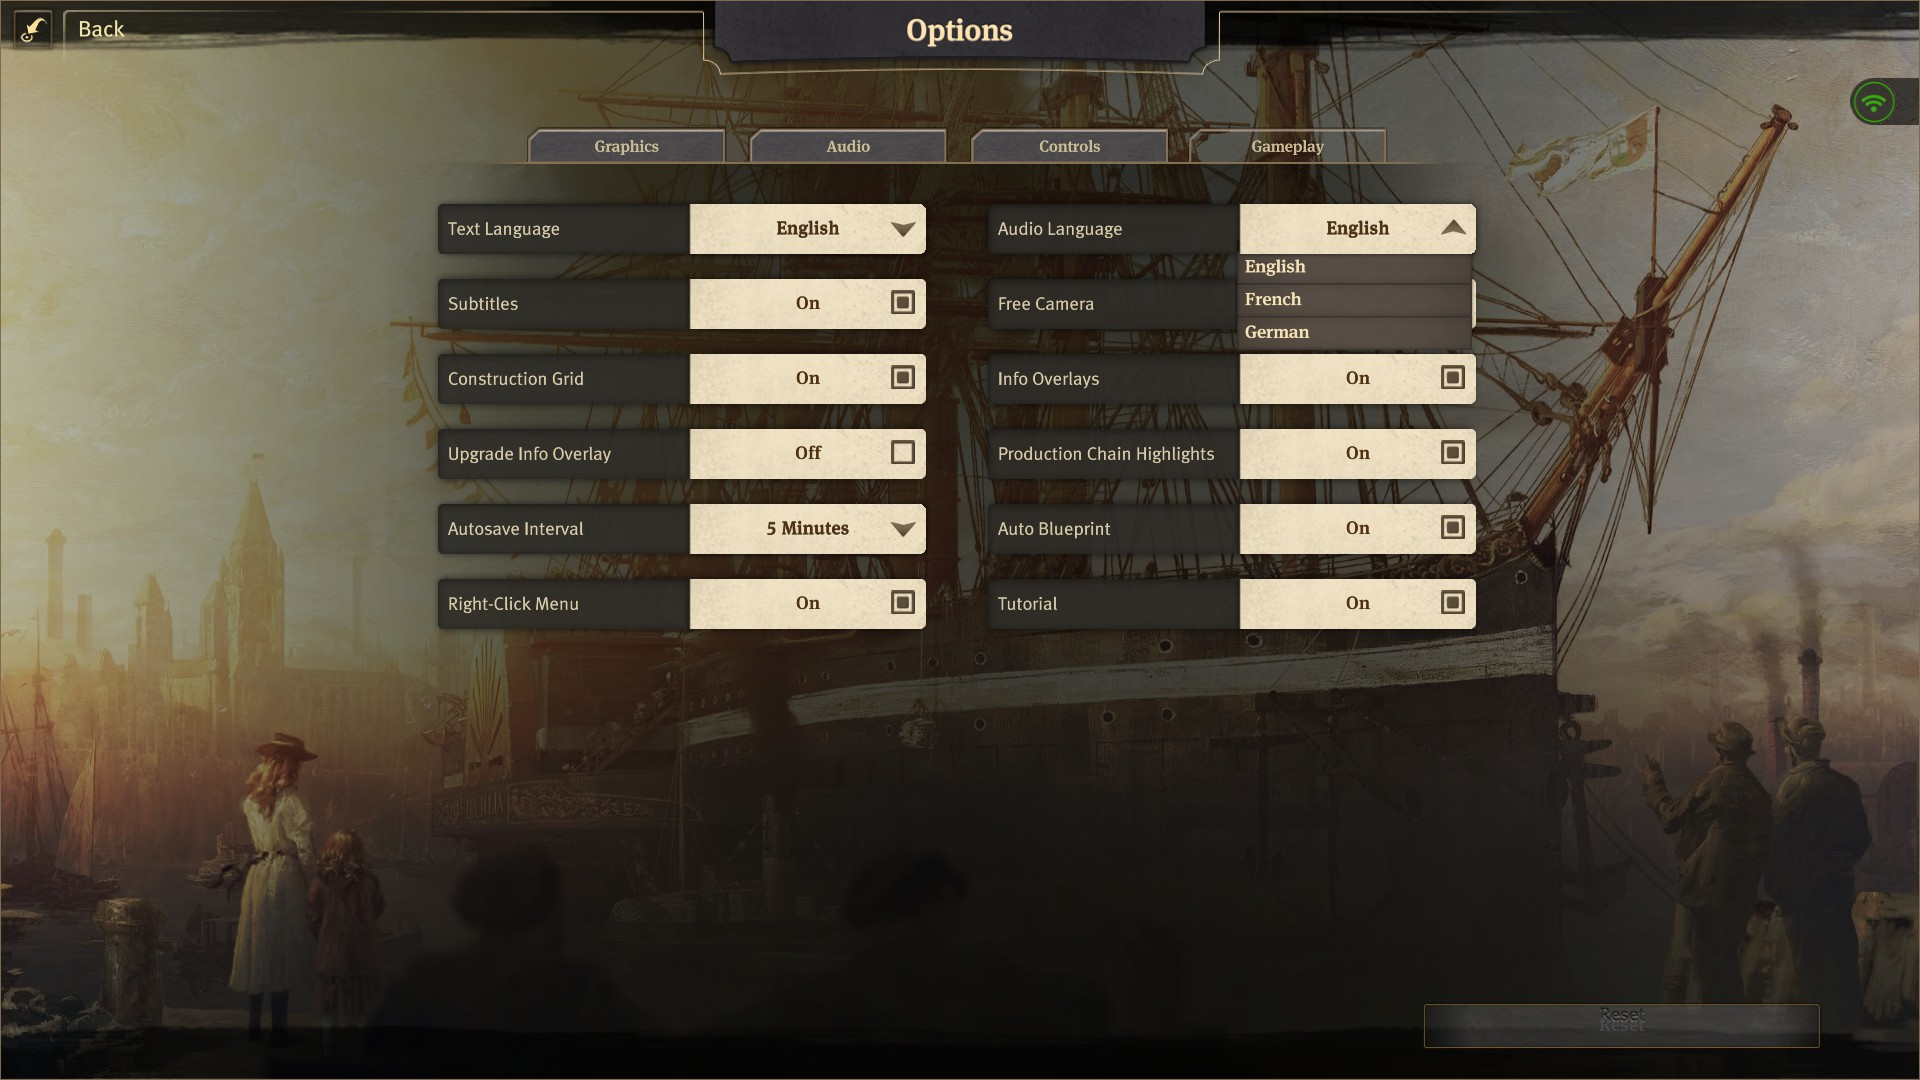 Anno 1800 Options Screen